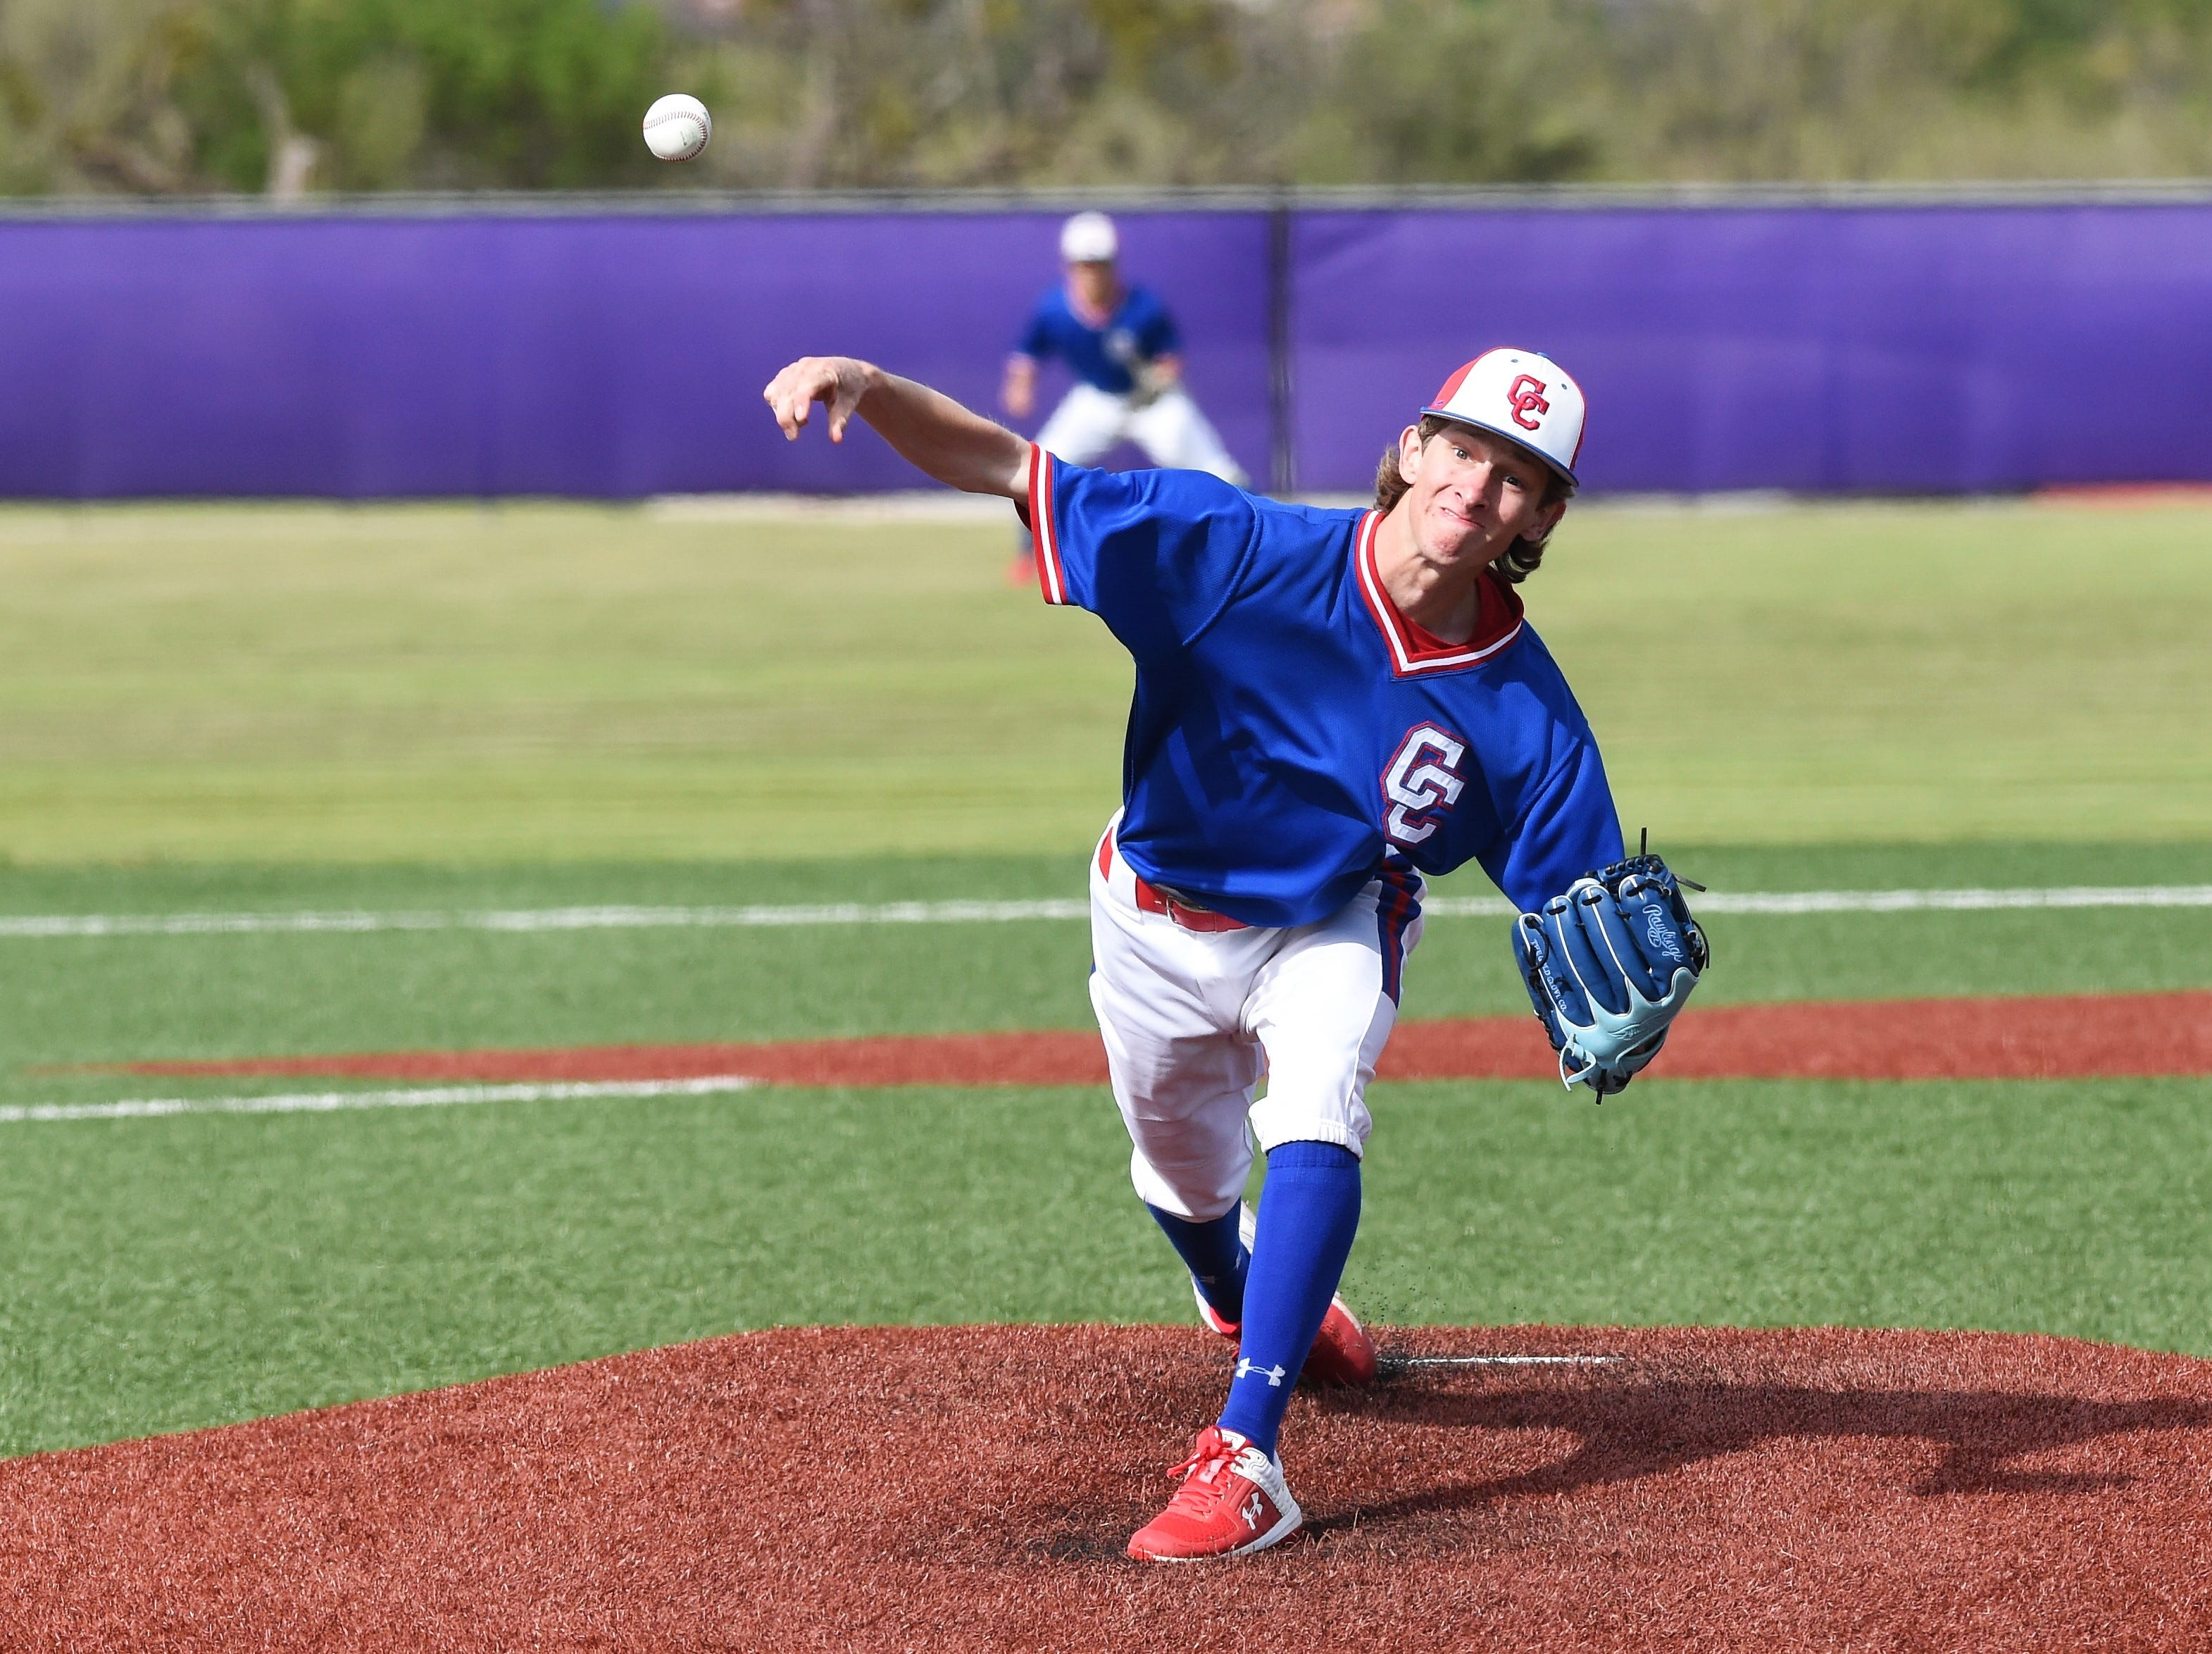 Cooper pitcher Matthew Shira (8) lets go of the ball against Wylie at Bulldog Field on Friday, April 12, 2019. The Cougars comeback bid fell short, 4-3.